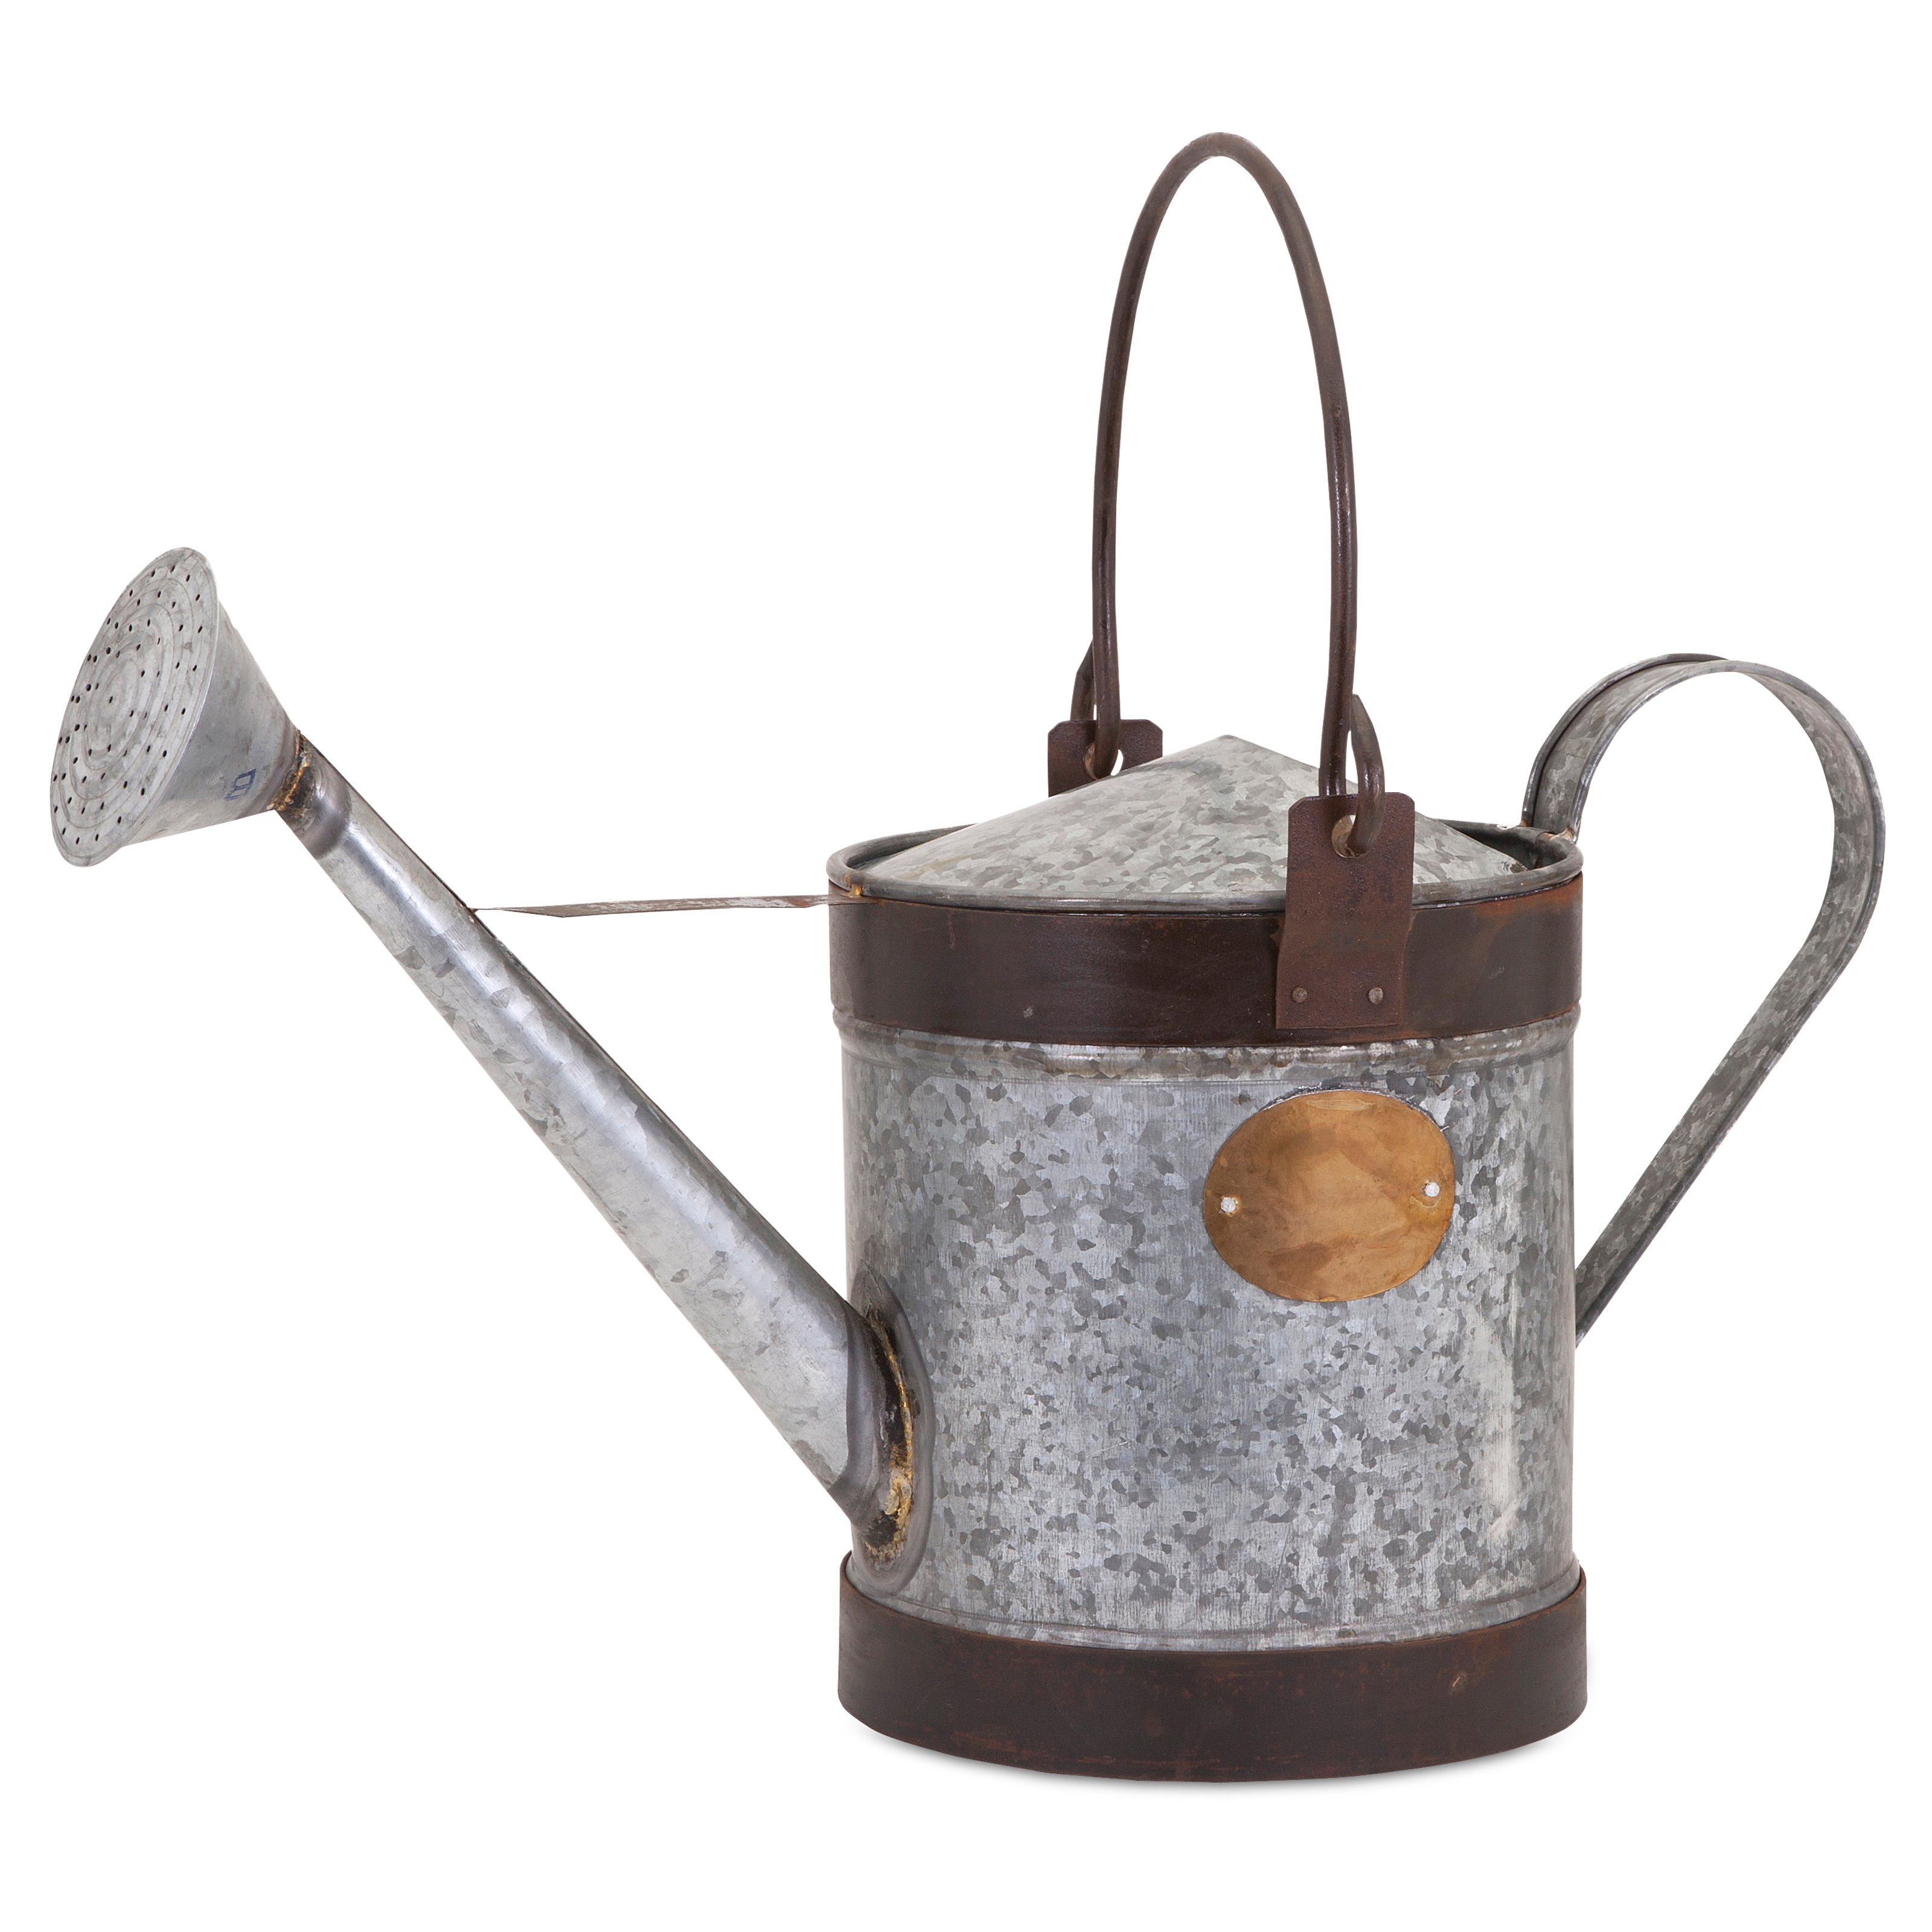 Imax Walsh Watering Can by IMAX Corporation